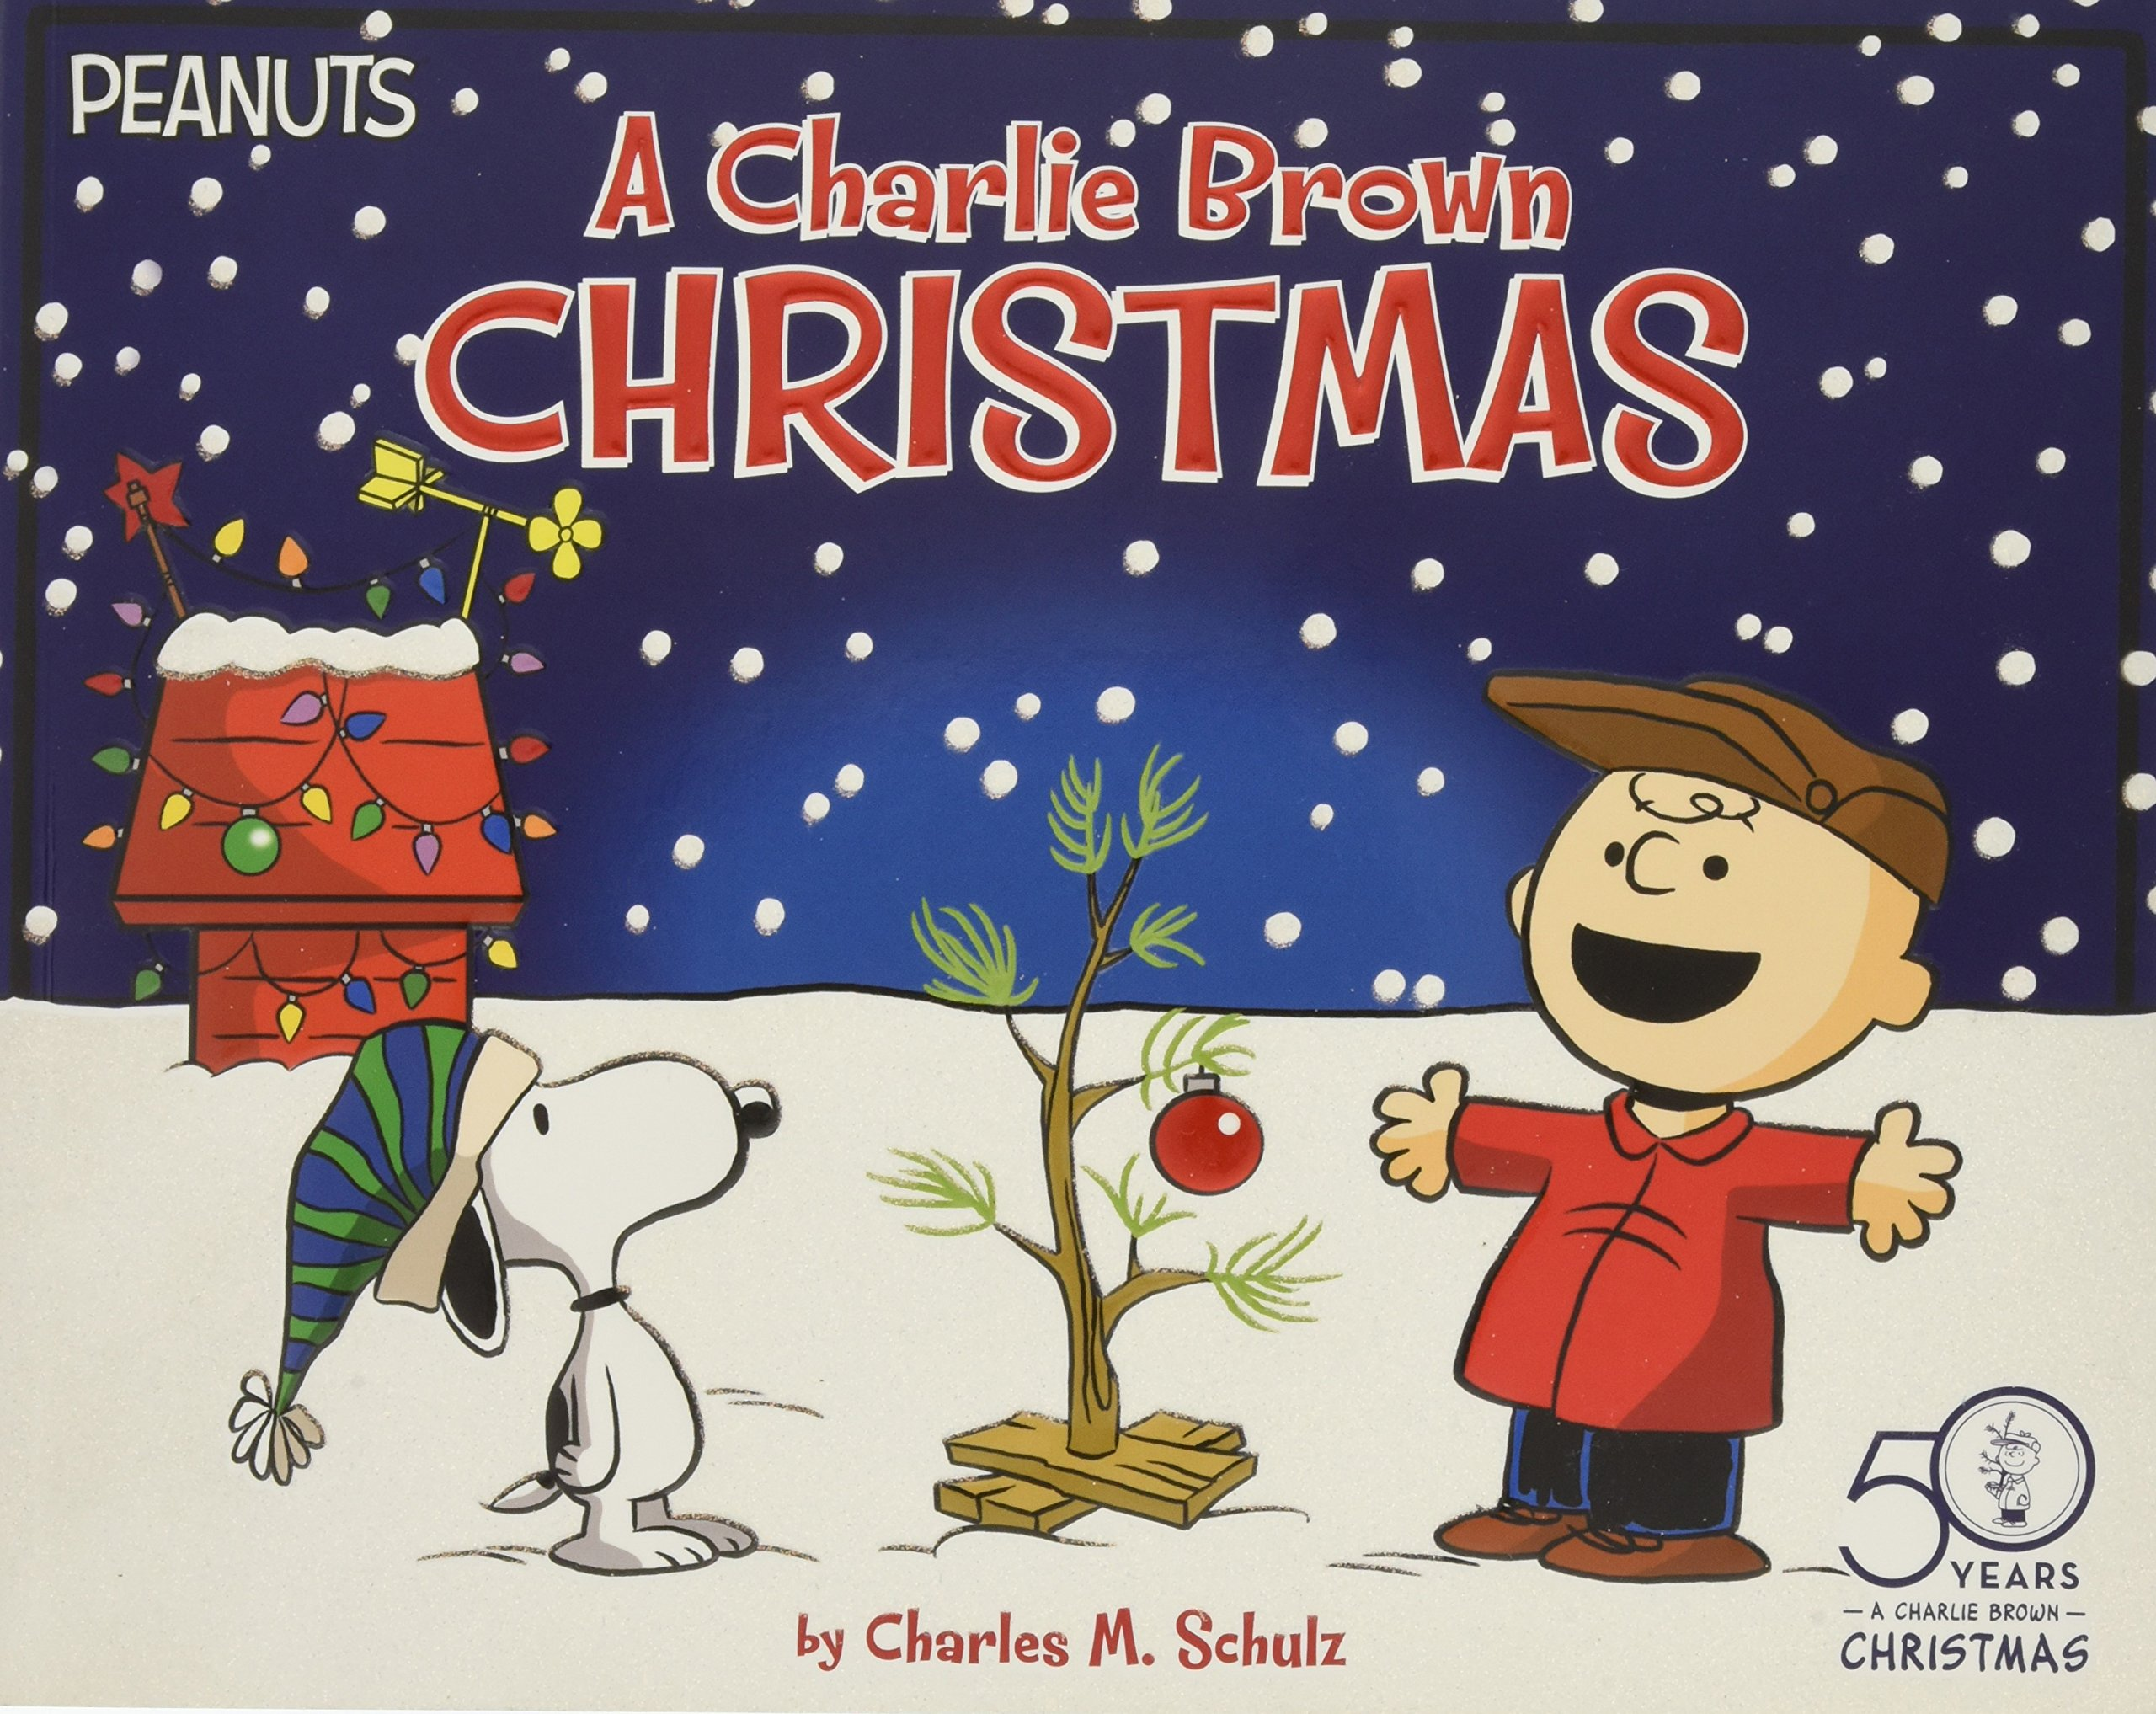 Charlie Brown Christmas Images.A Charlie Brown Christmas Peanuts Amazon Co Uk Charles M